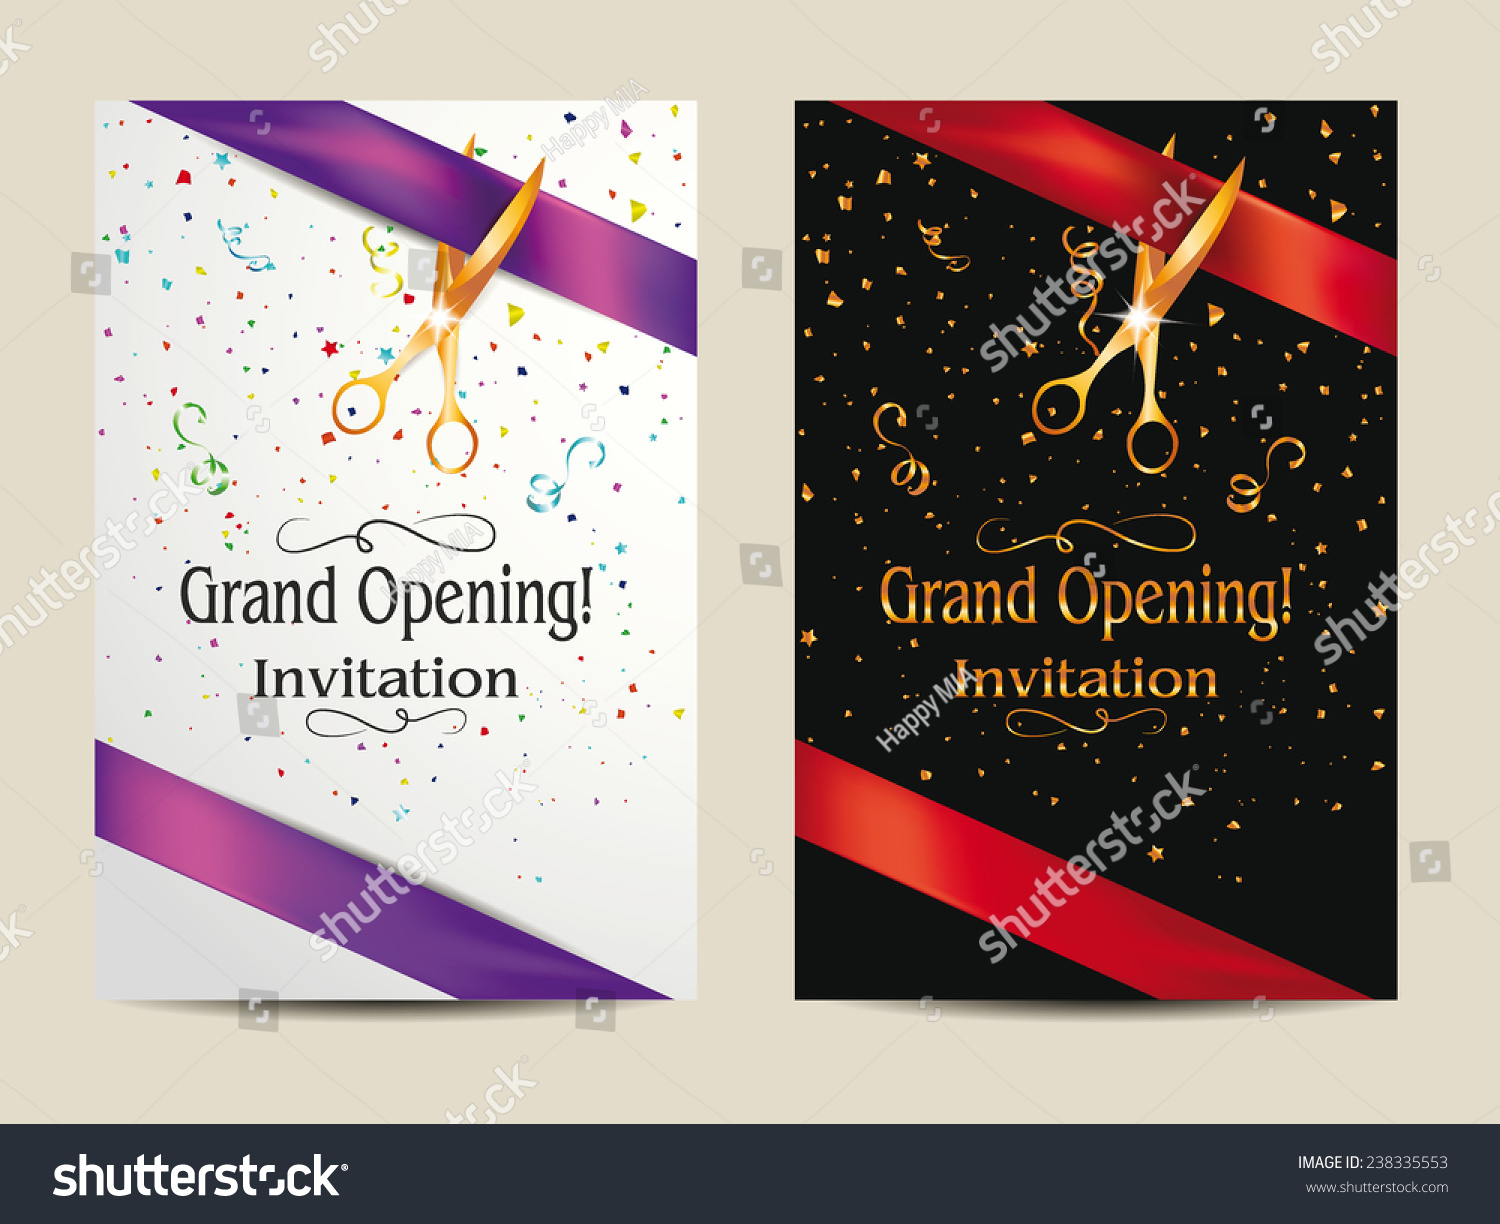 Grand Opening Invitation Cards Confetti Vector 238335553 – Inauguration Invitation Card Sample